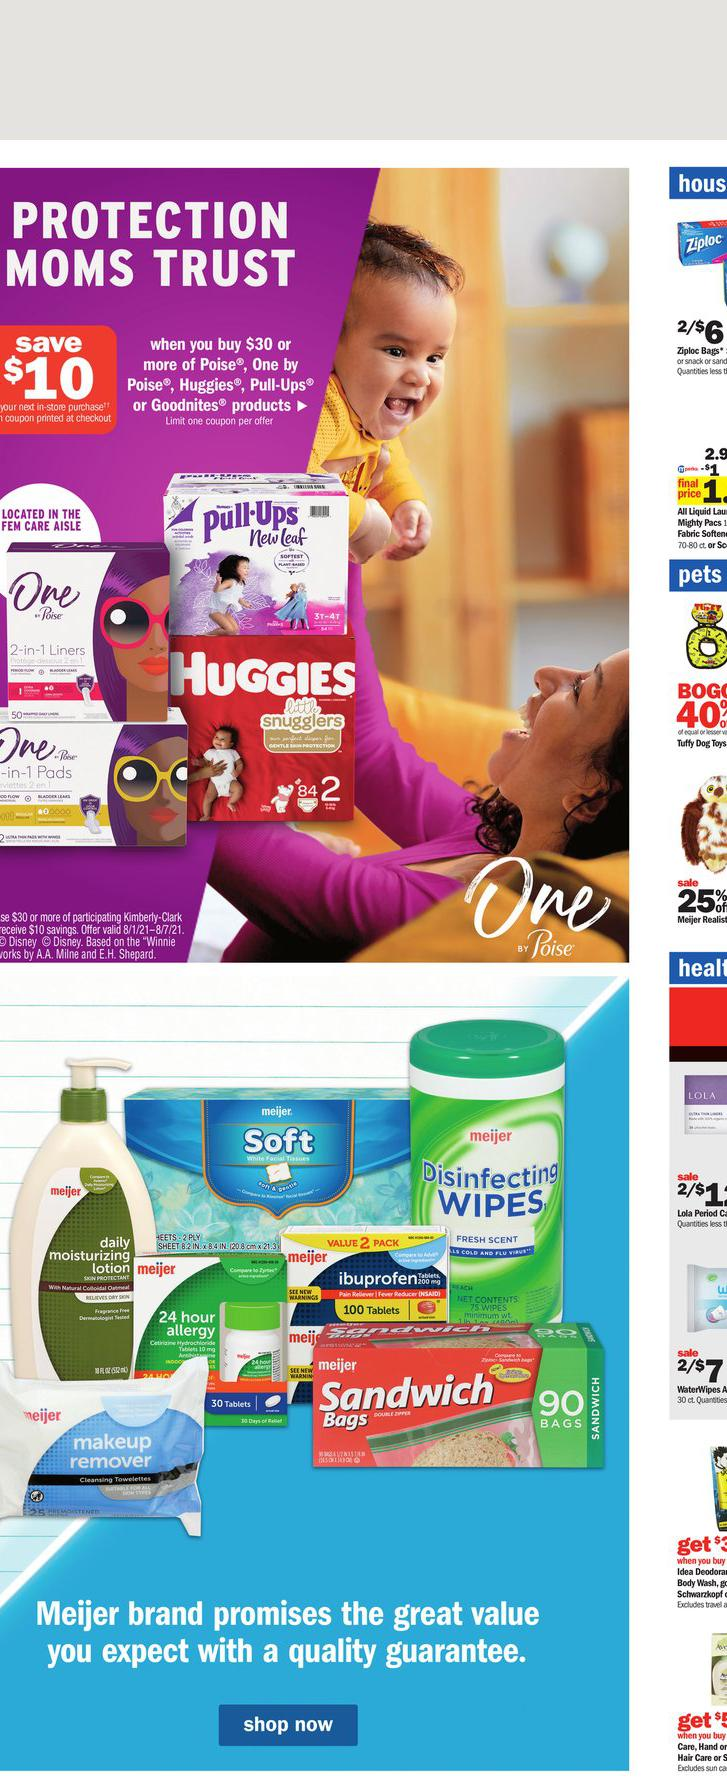 01.08.2021 Meijer ad 15. page